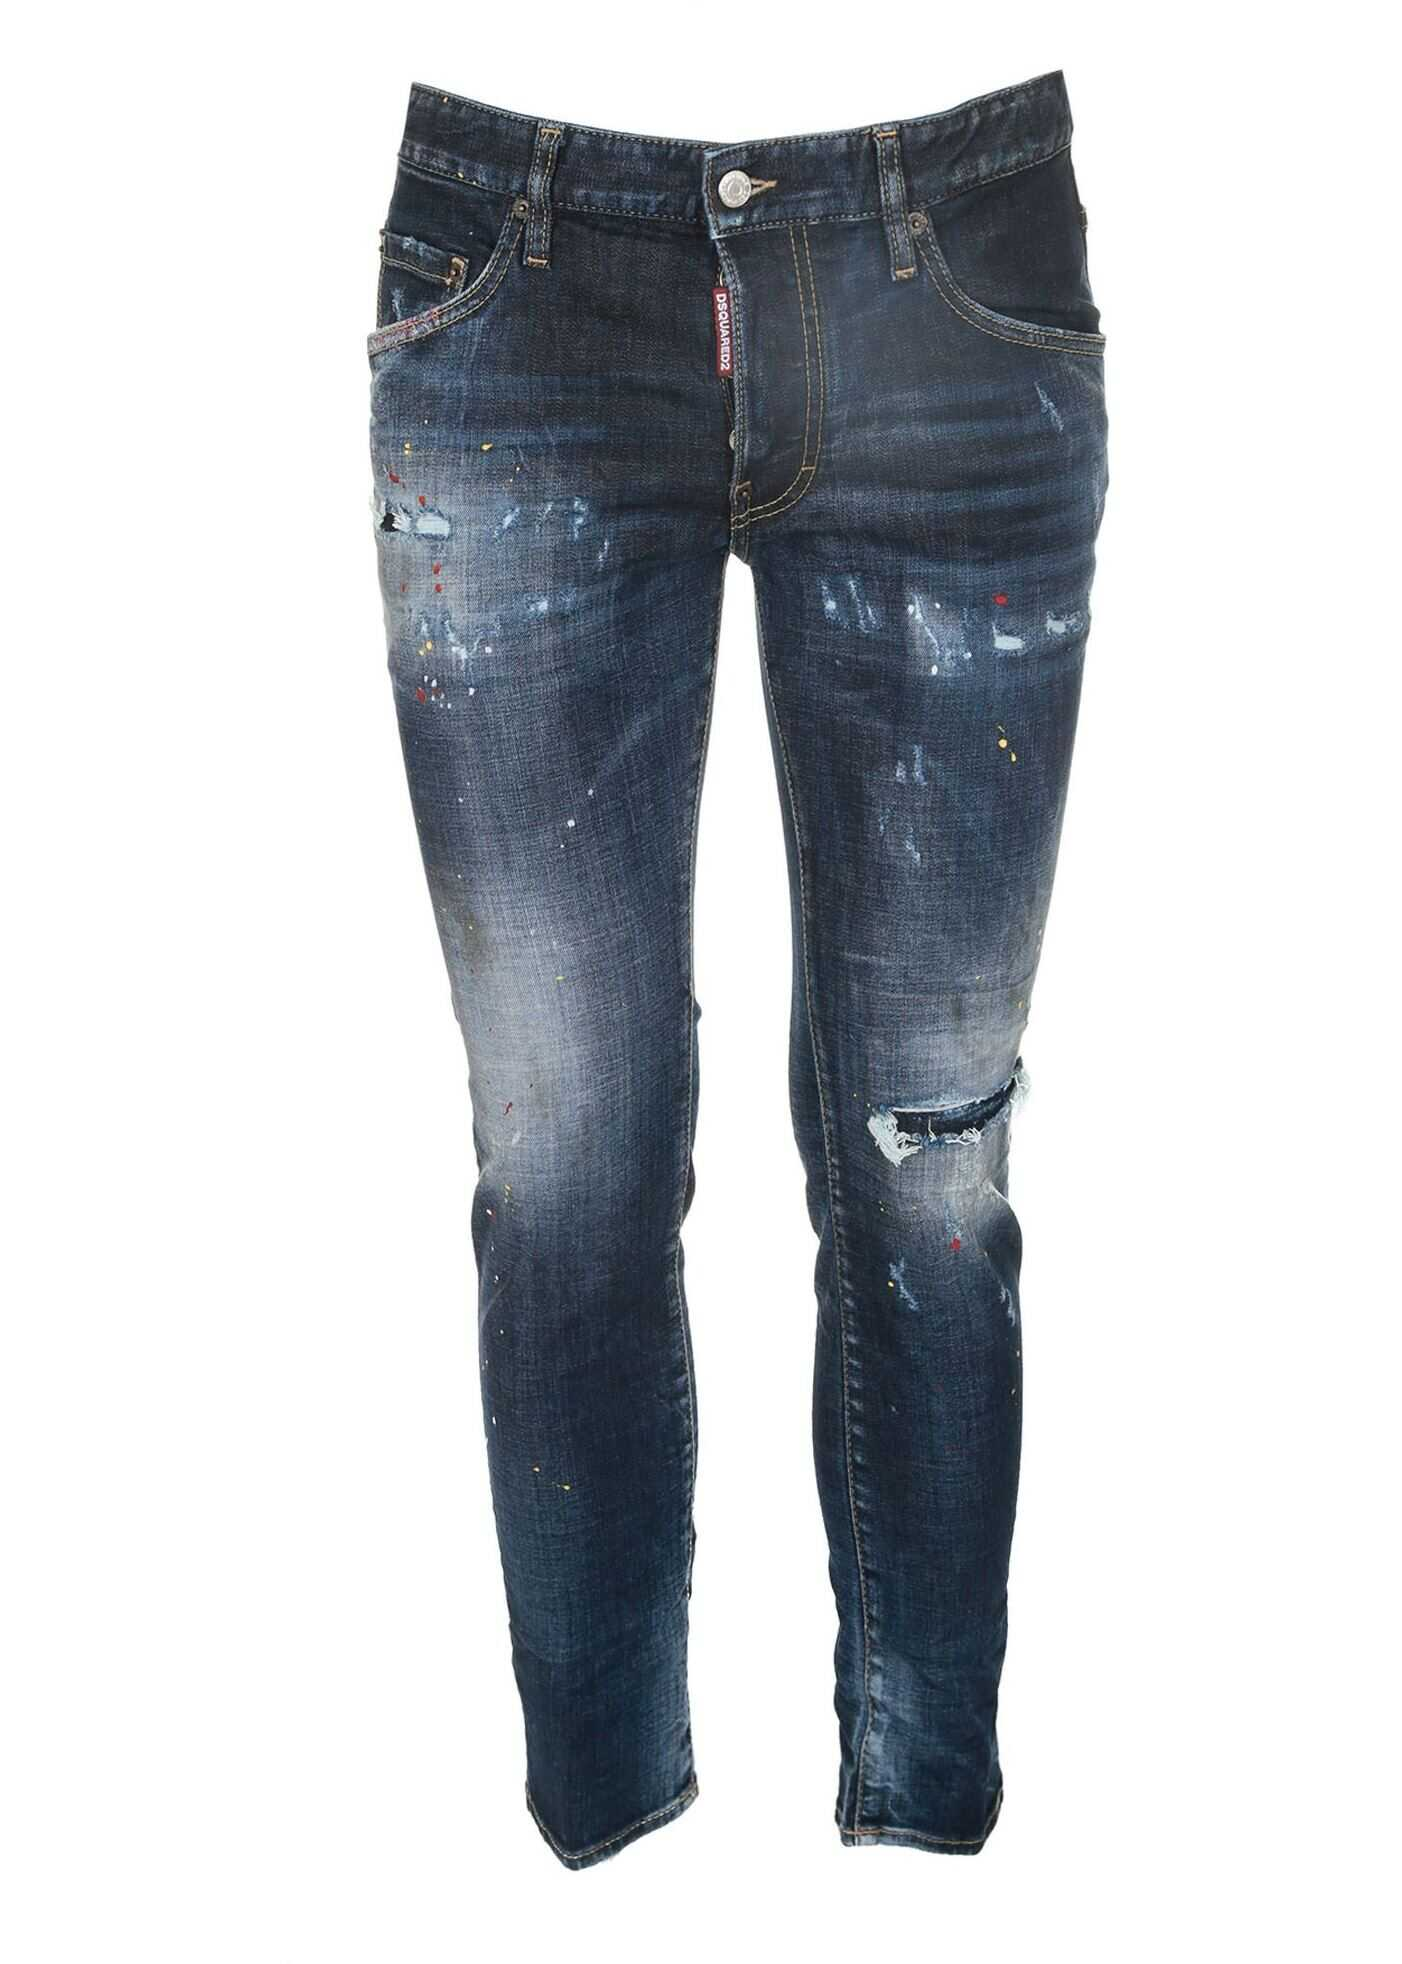 DSQUARED2 Skater Jeans In Blue With Spots Blue imagine